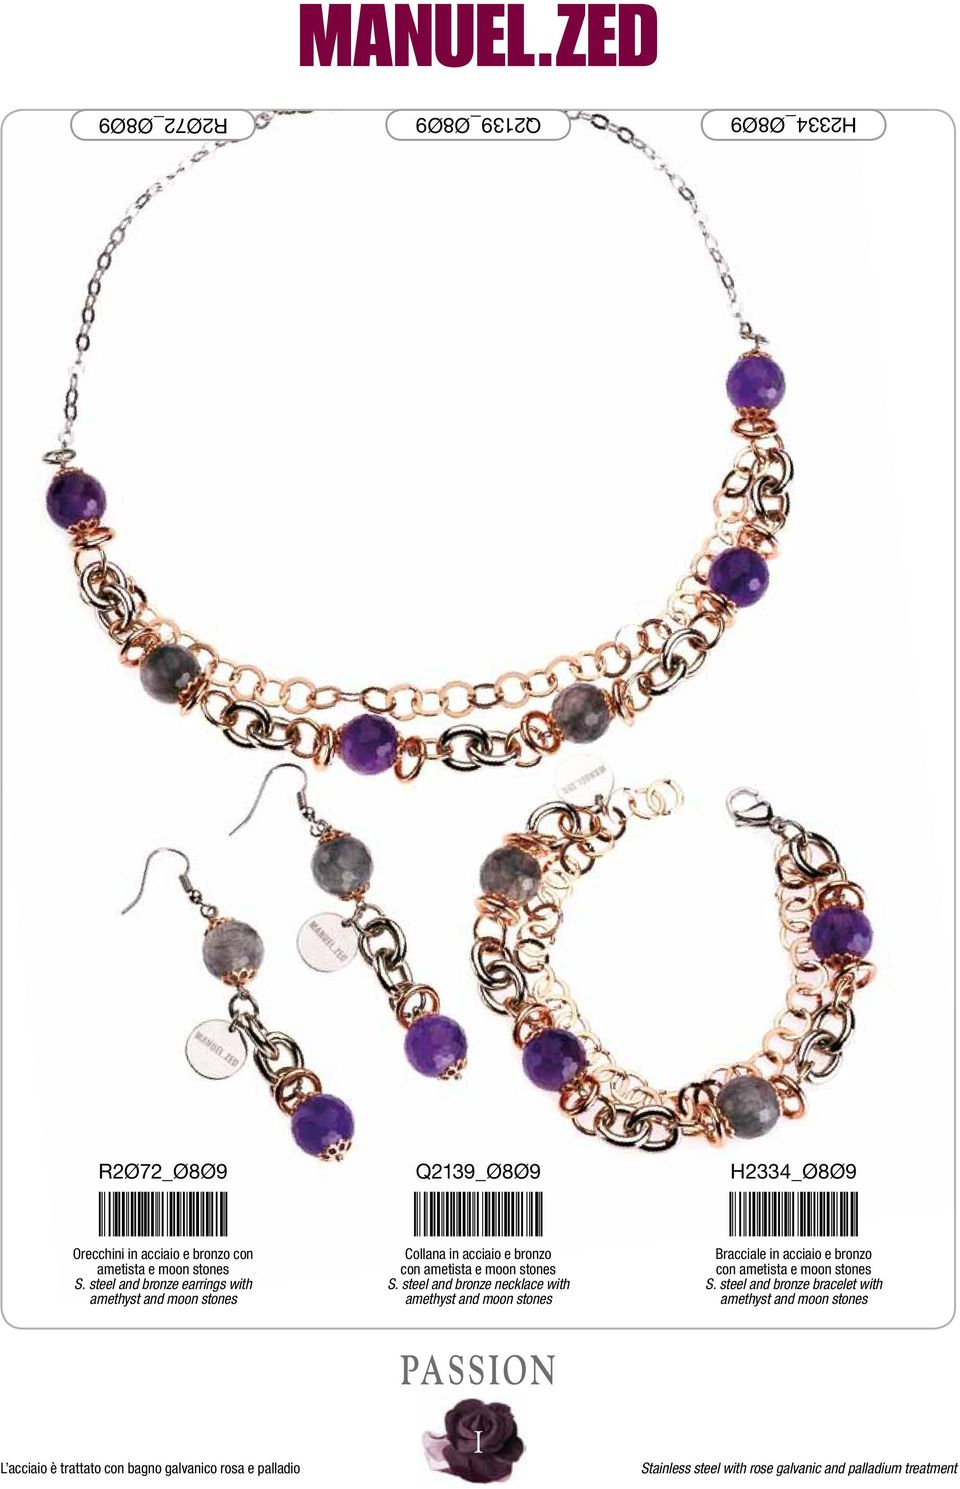 steel and bronze necklace with amethyst and moon stones Bracciale in acciaio e bronzo con ametista e moon stones S.